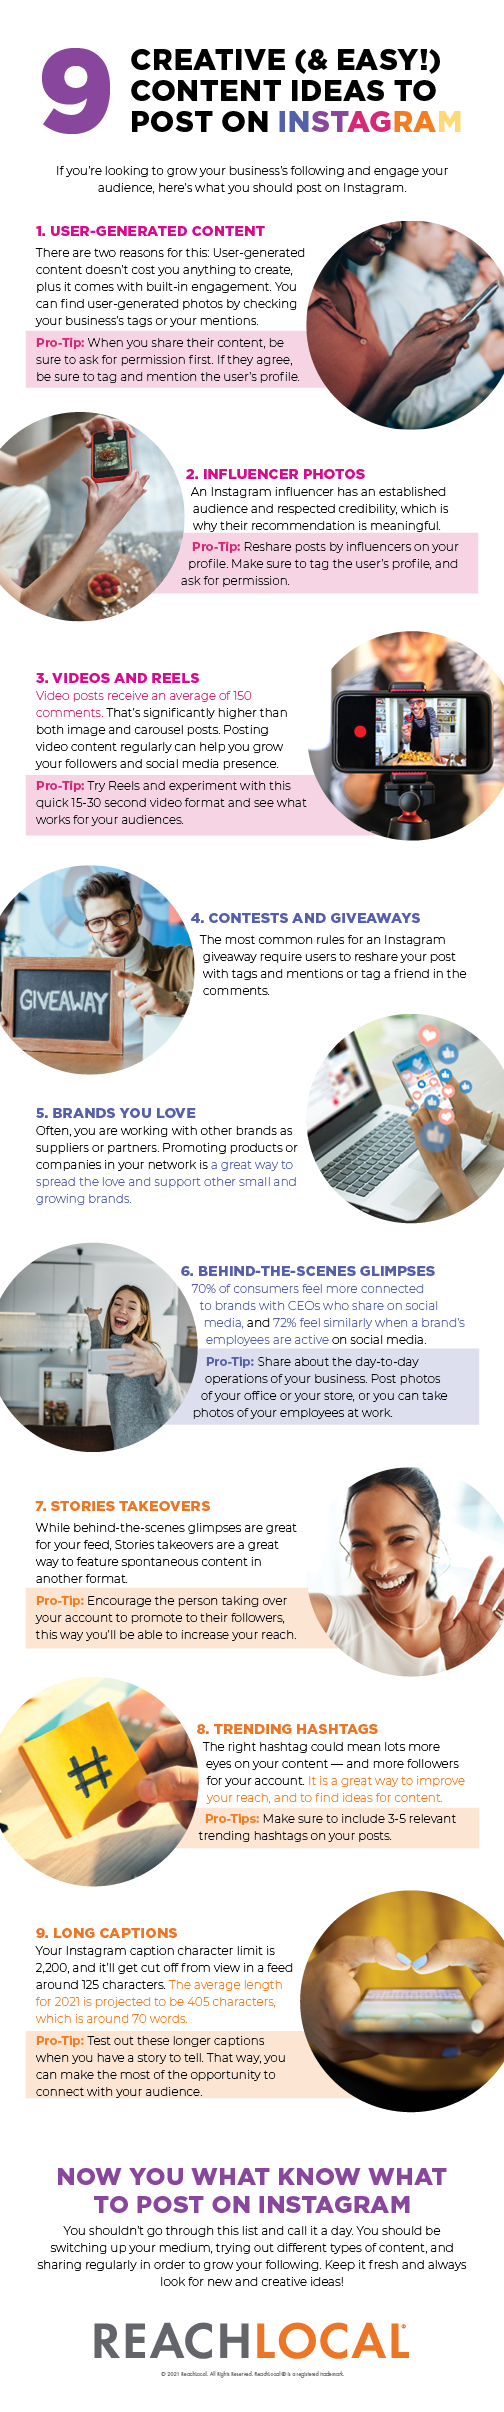 9 Creative (& Easy!) Content Ideas to Post on Instagram